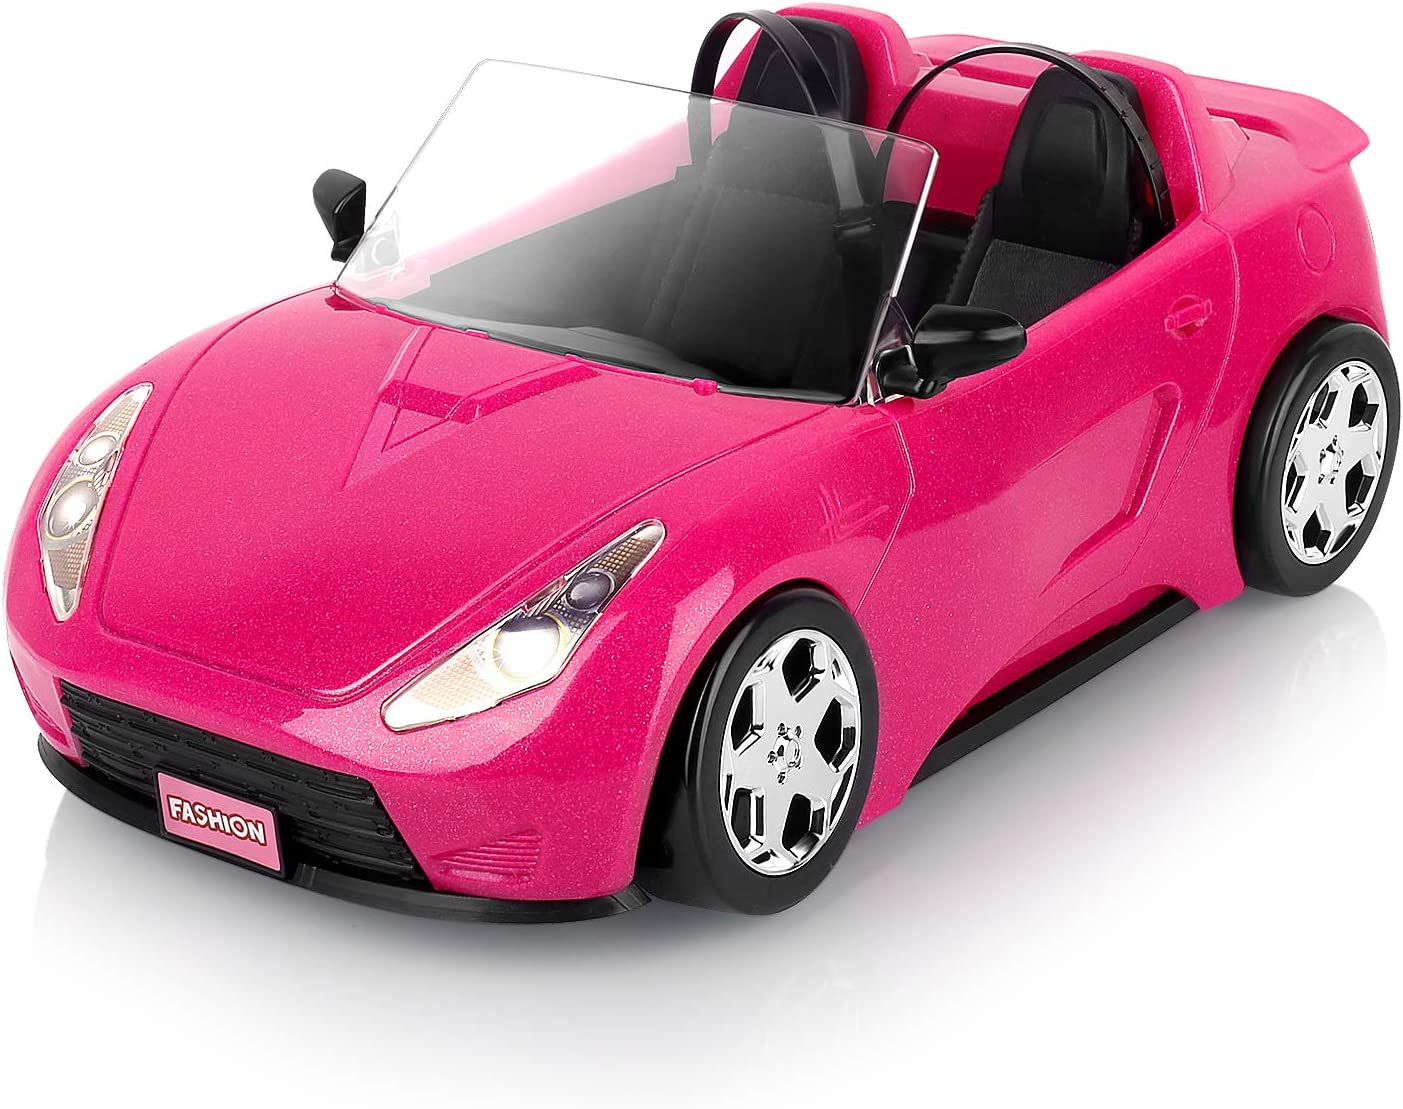 Super Joy Dolls Accessories - Convertible Car for Dolls (Great for Barbie Dolls) Glittering Pink Convertible Doll Vehicle